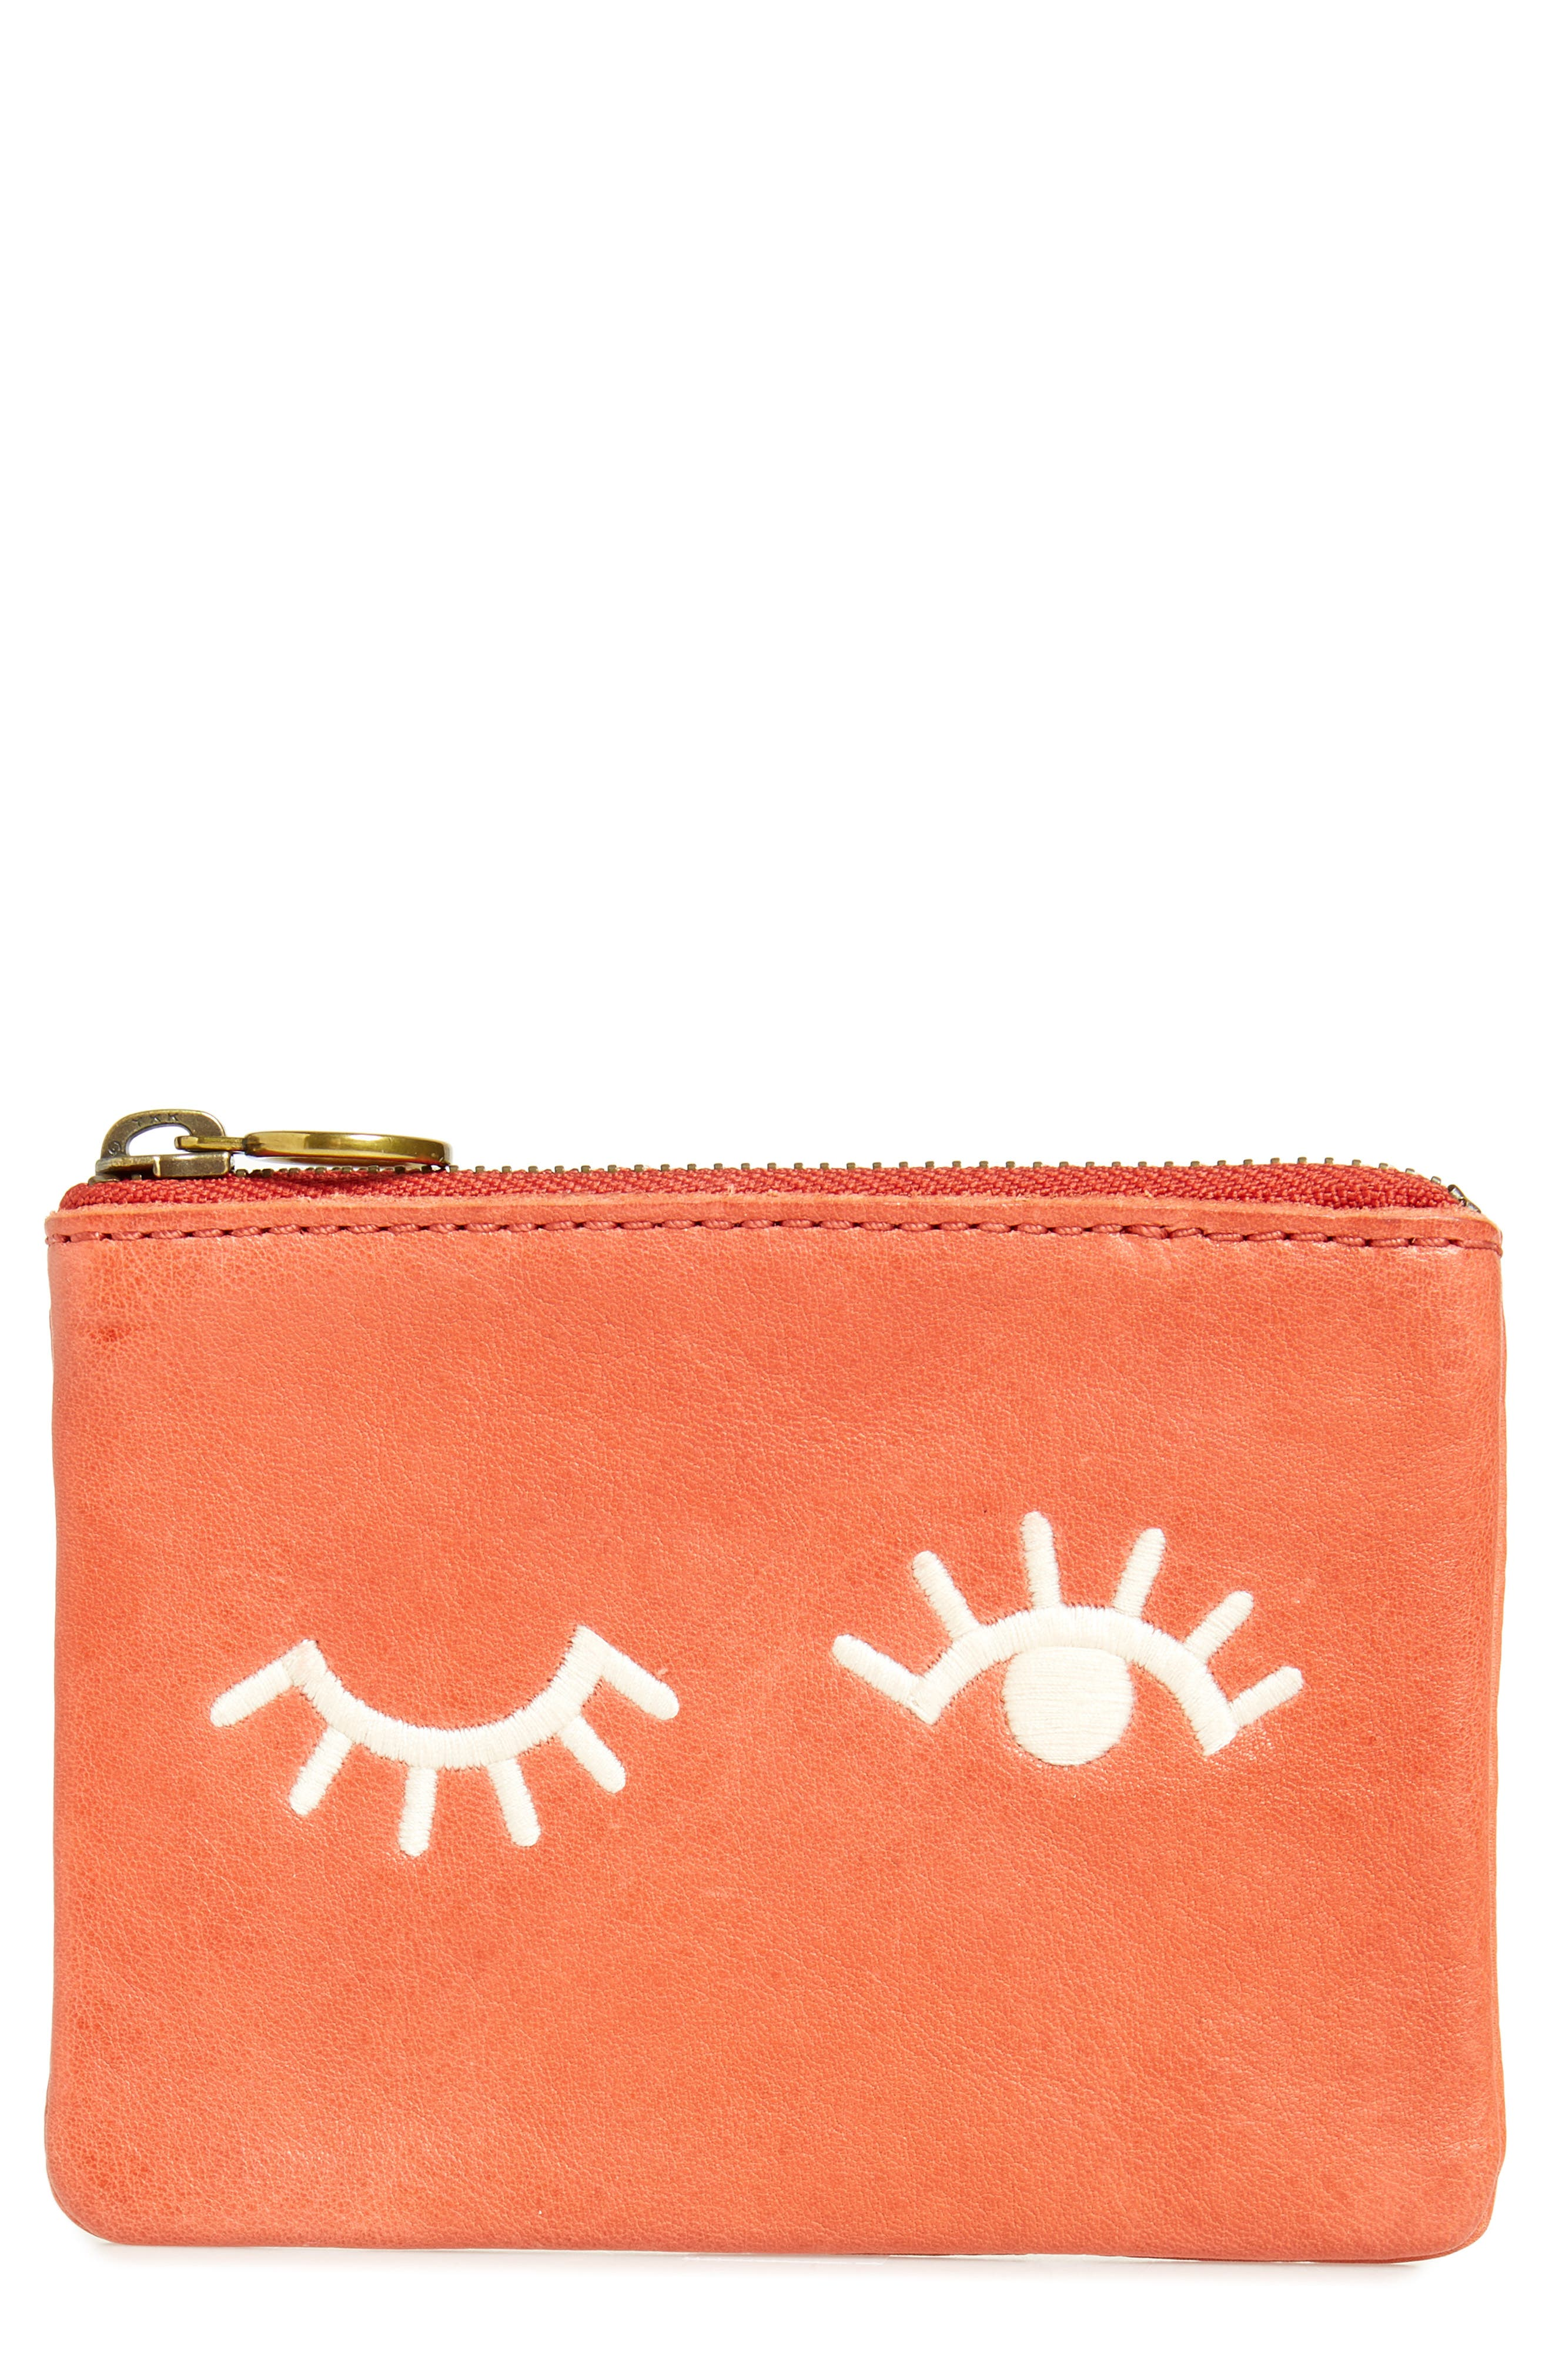 Eye Embroidered Leather Zip Pouch,                             Main thumbnail 1, color,                             Parched Terracotta